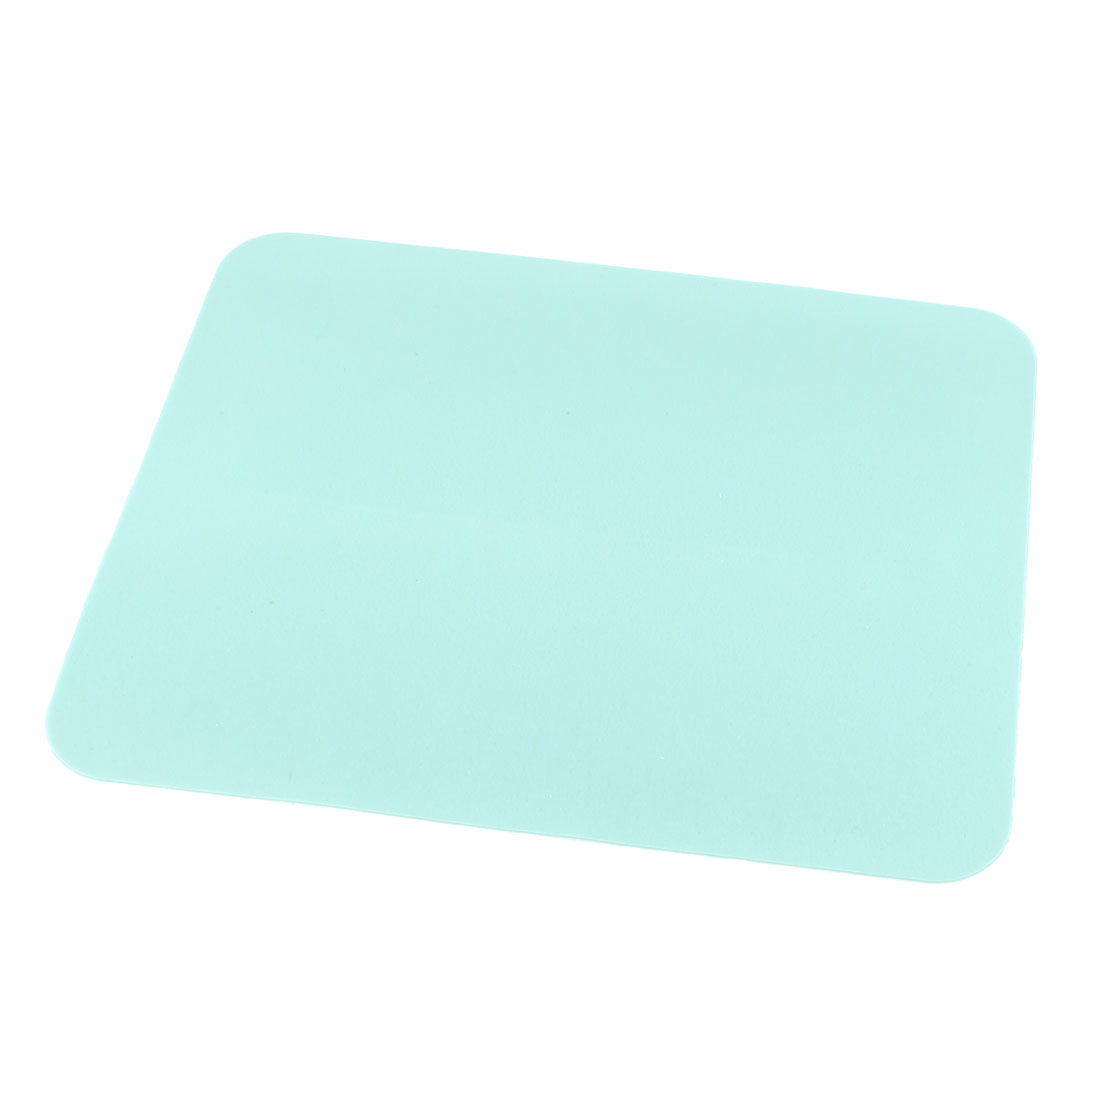 Cyan Silicone Nonslip Backing Washable Mouse Pad Mat for PC Computer